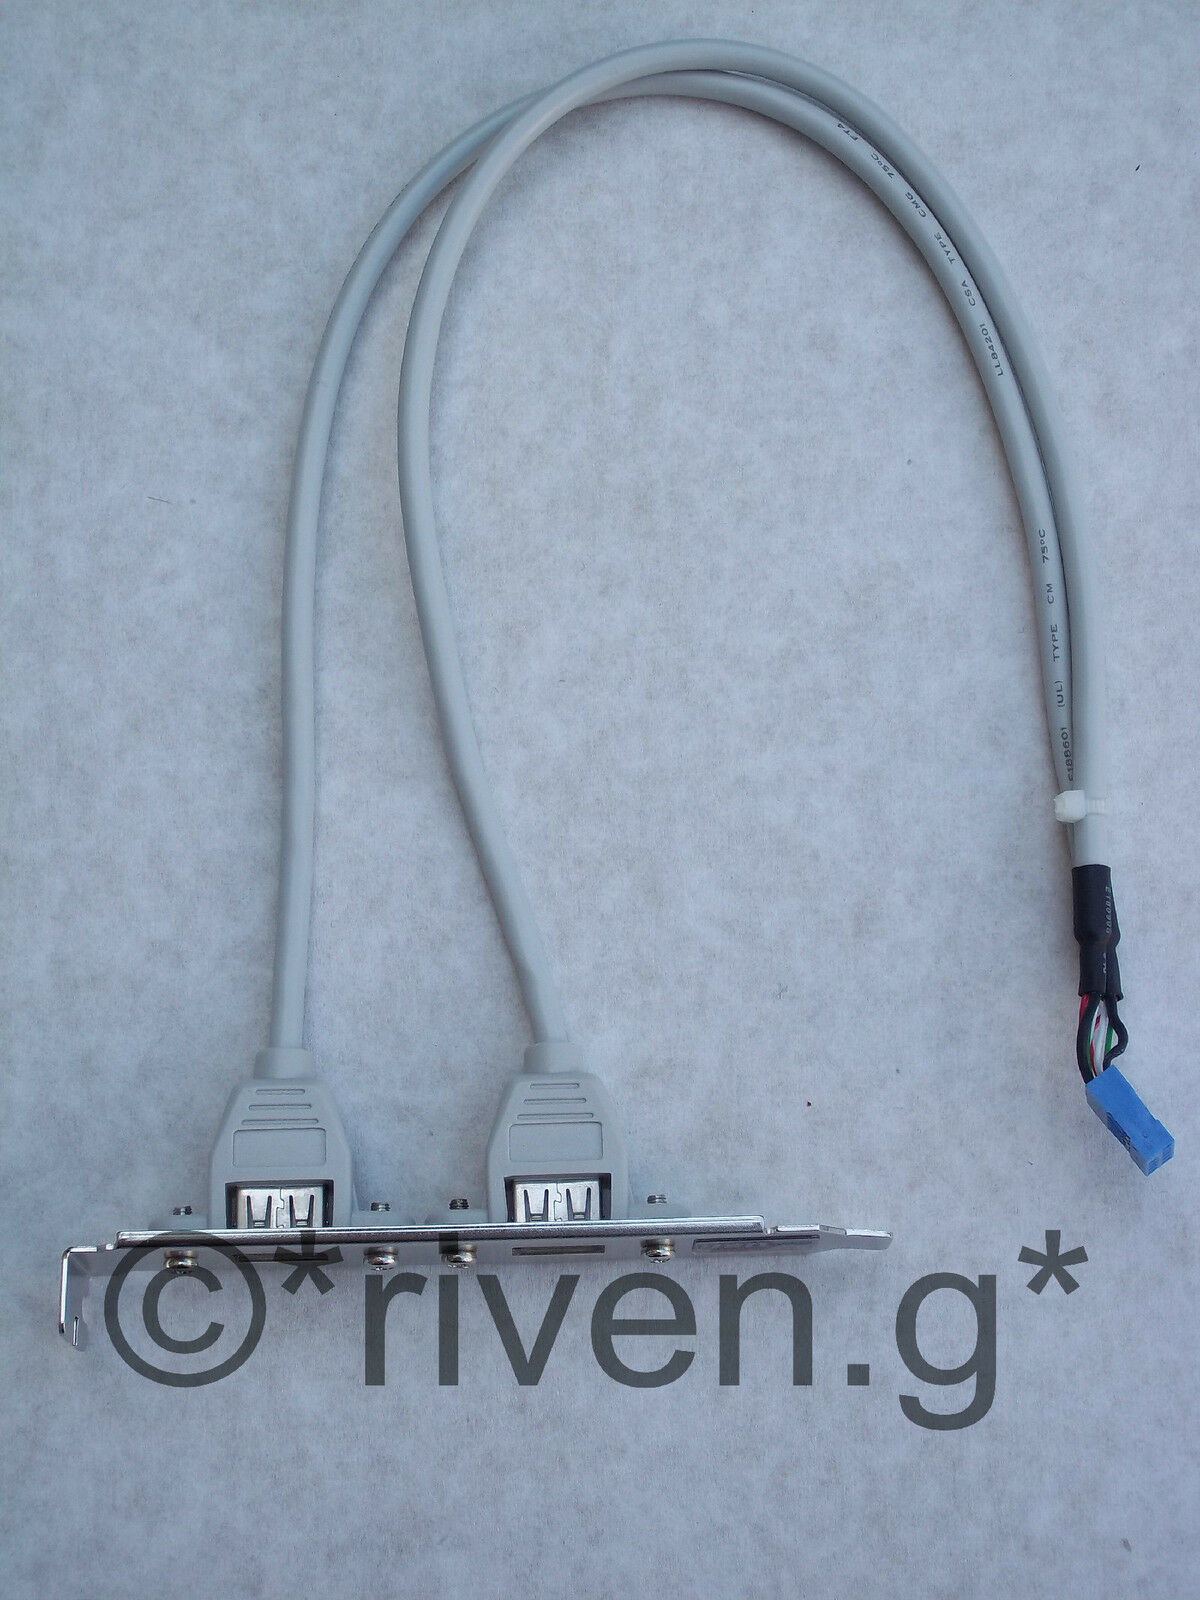 USB HEADER CABLE@USB 2.0 COMPATIBLE@SHIELDED CABLE ADD 2 X USB PORTS TO YOUR PC